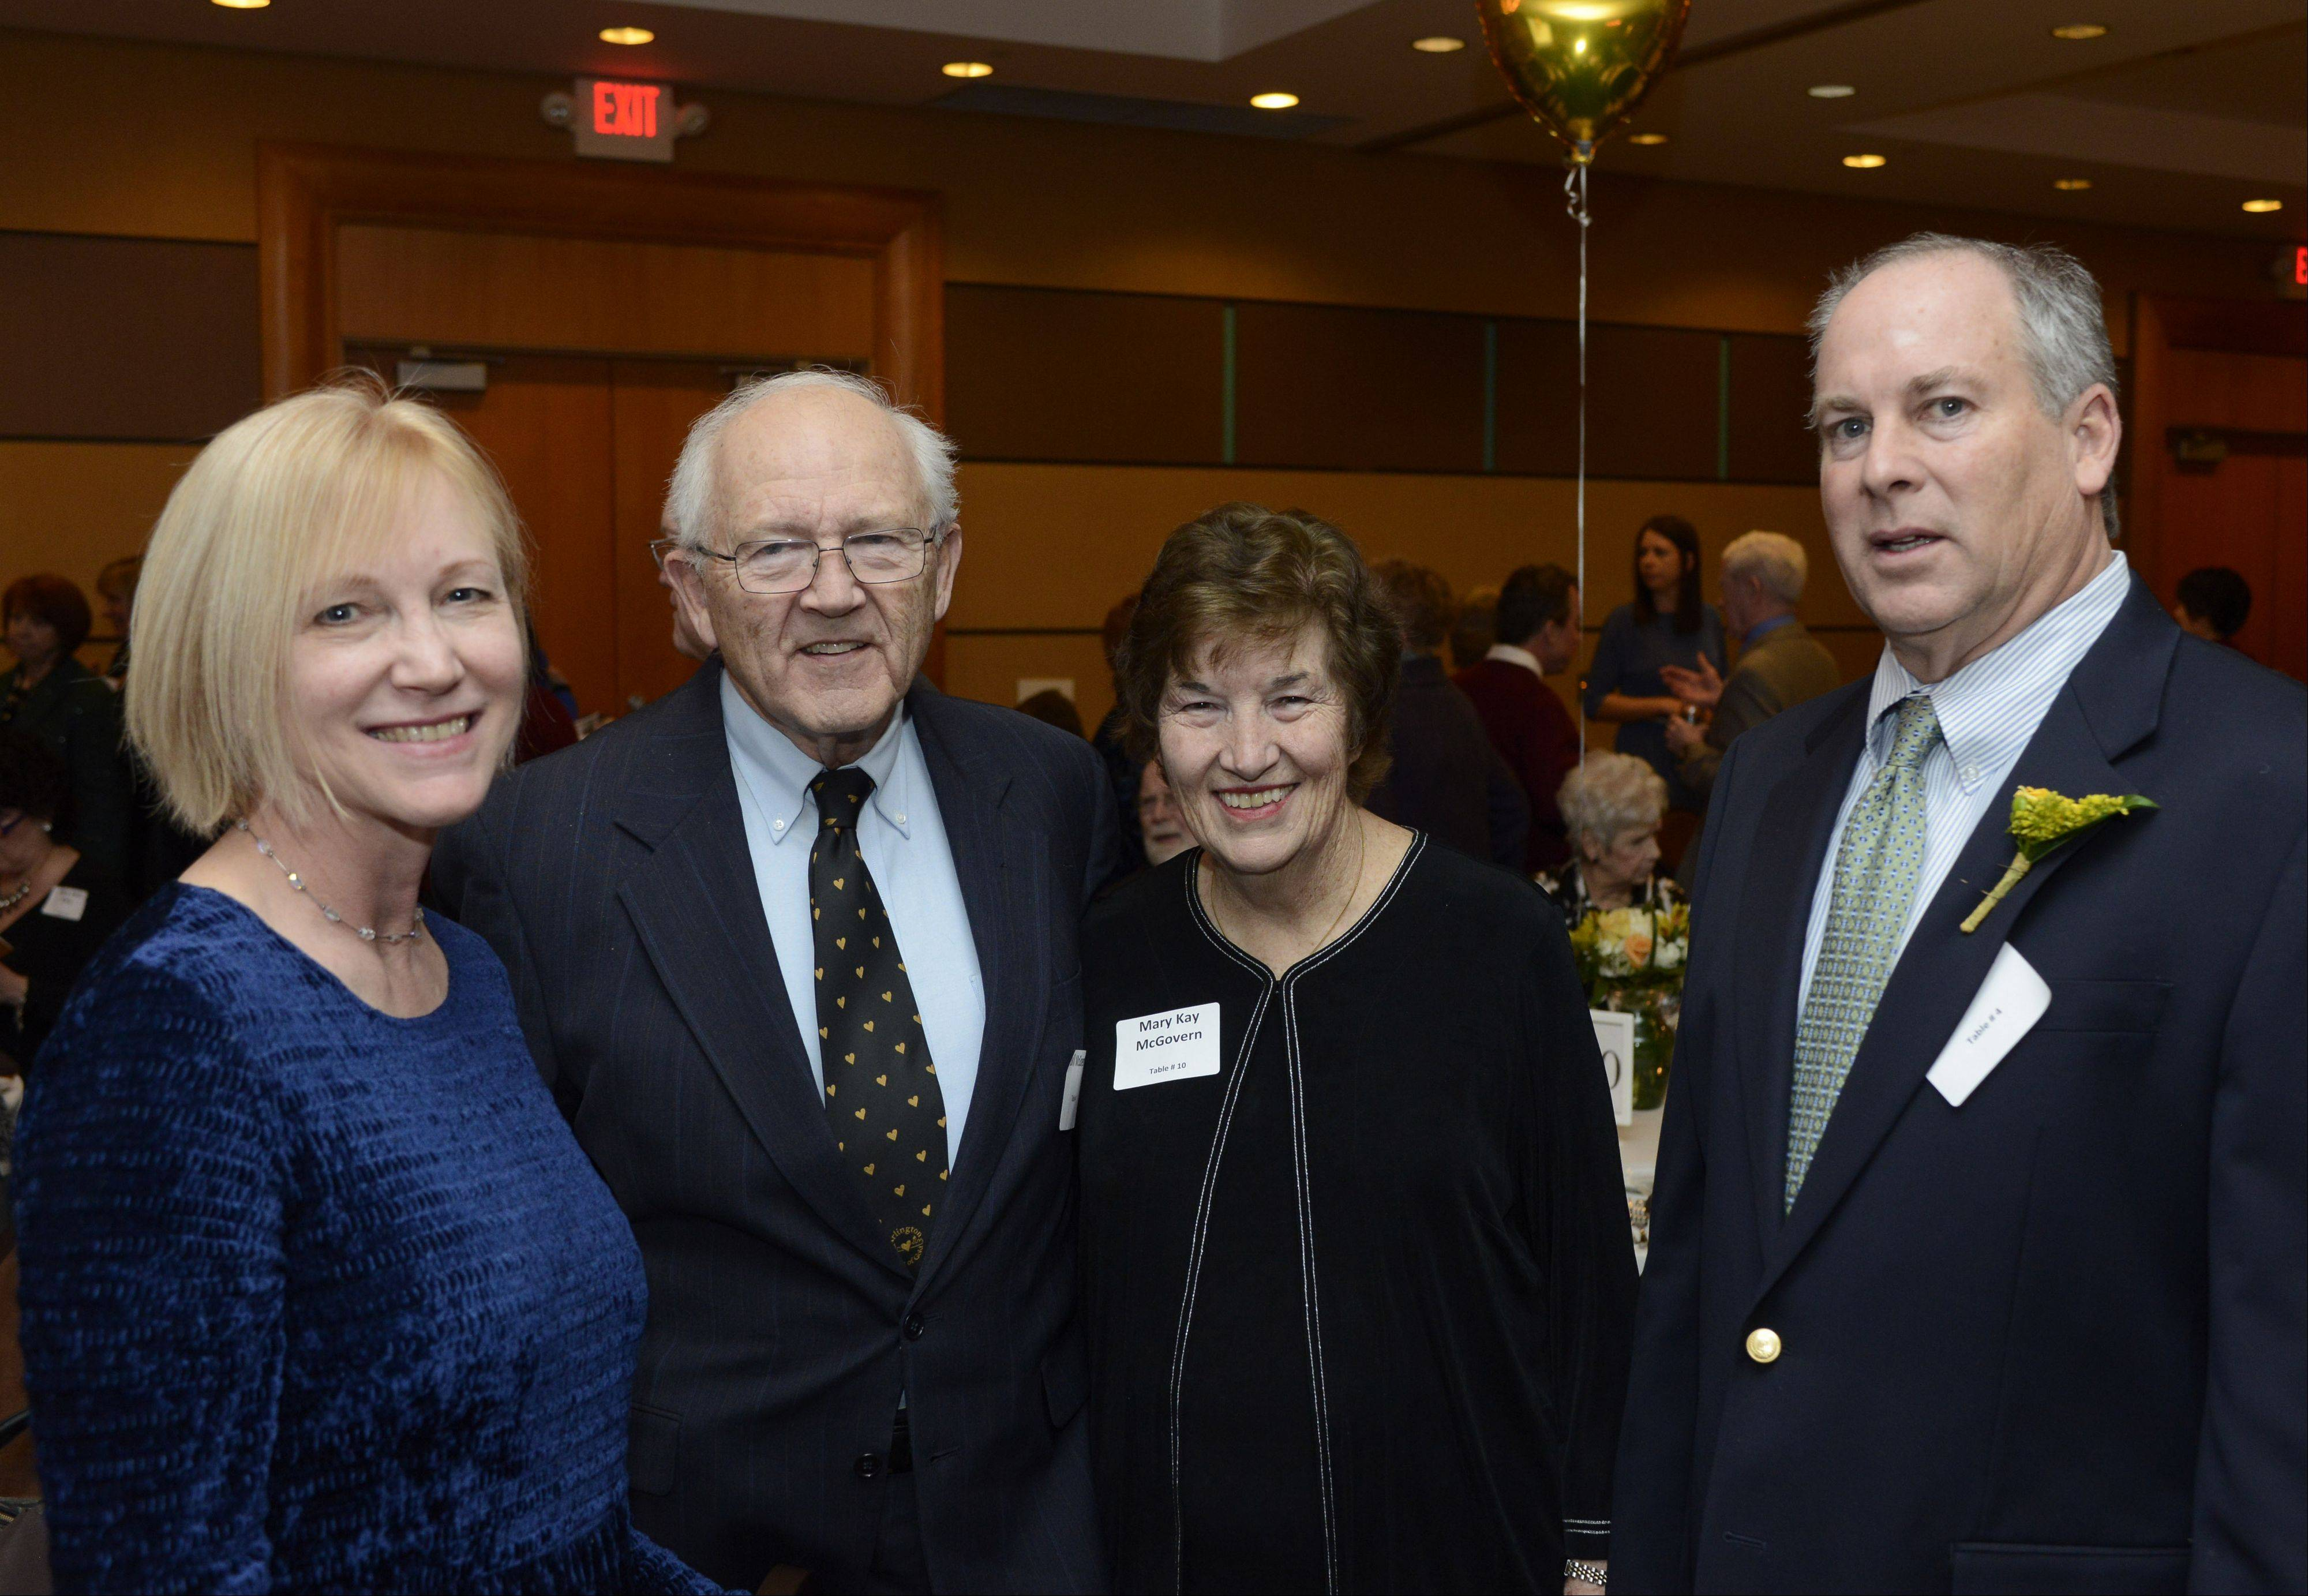 Amy Sanecki, left, and her husband, Jim, right, winner of the Mentor Heart of Gold award, with their friends Mary Kay and Bill McGovern, during Arlington Heights' 15th annual Hearts of Gold dinner Saturday night. Sanecki was honored for helping students learn the trades while conducting renovation projects for seniors.